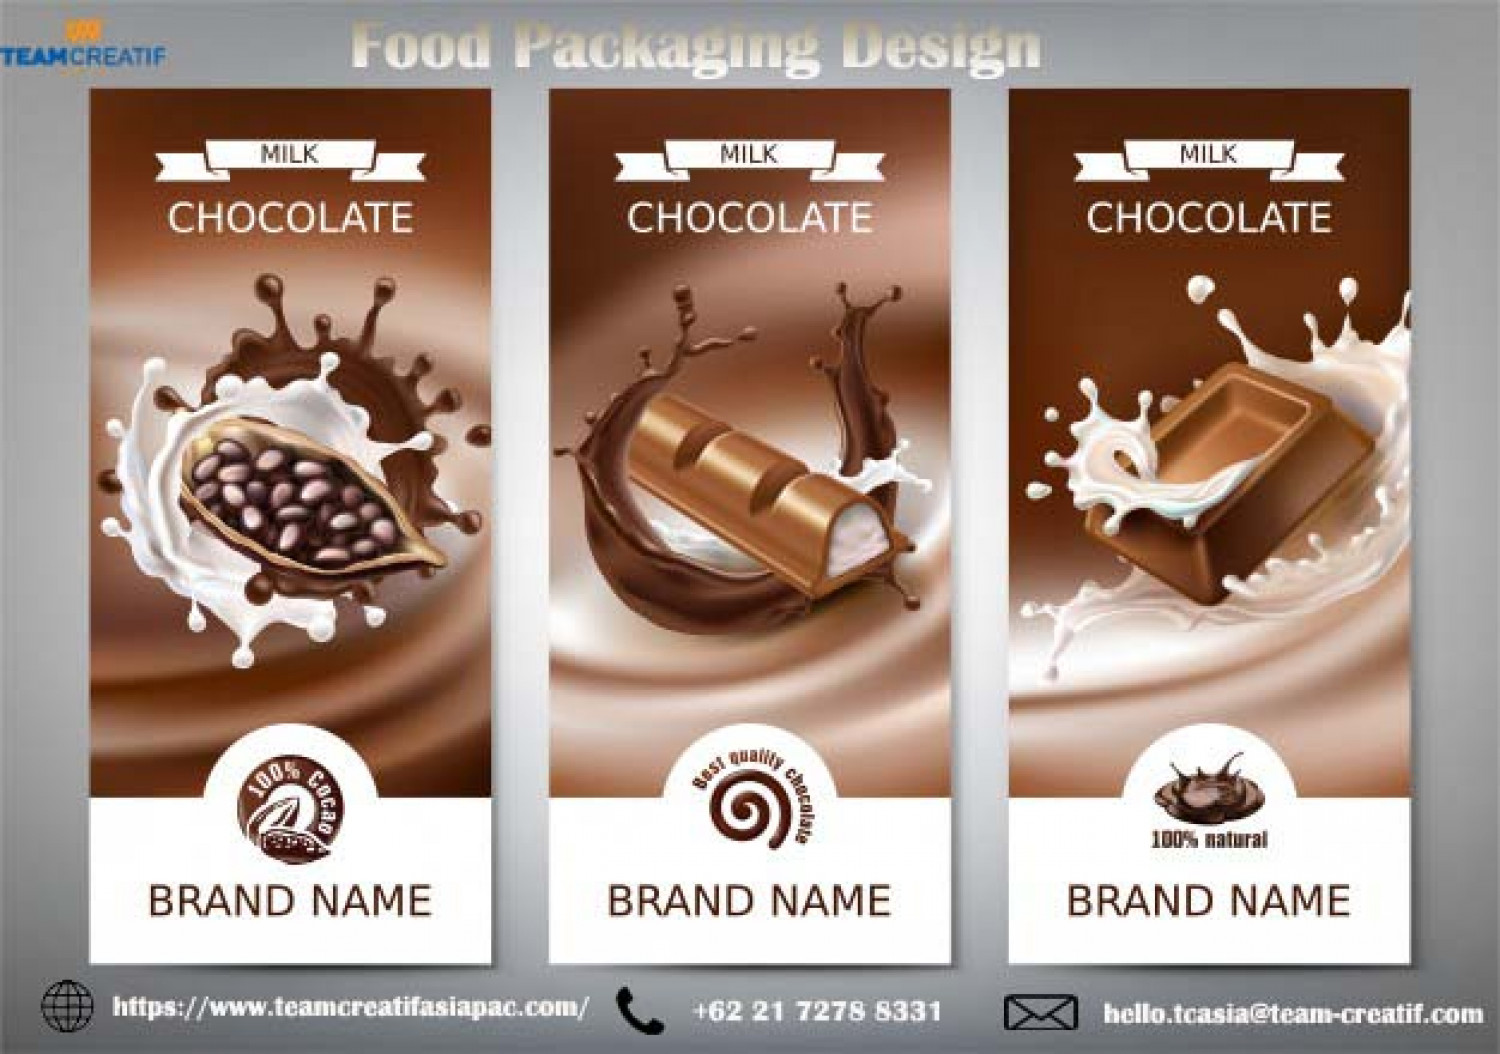 Food Packaging Design Infographic